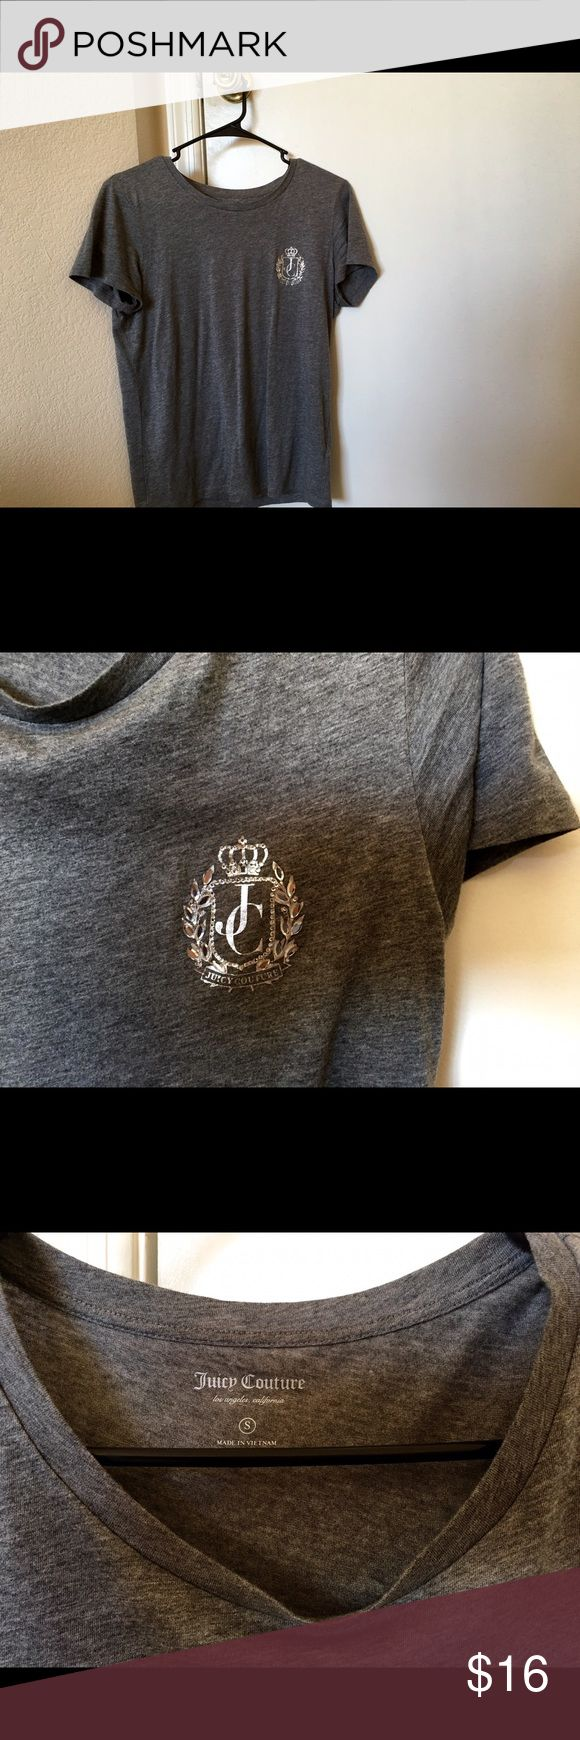 🐘Juicy Couture Logo Tee Only worn twice, in great condition. Juicy Couture Tops Tees - Short Sleeve